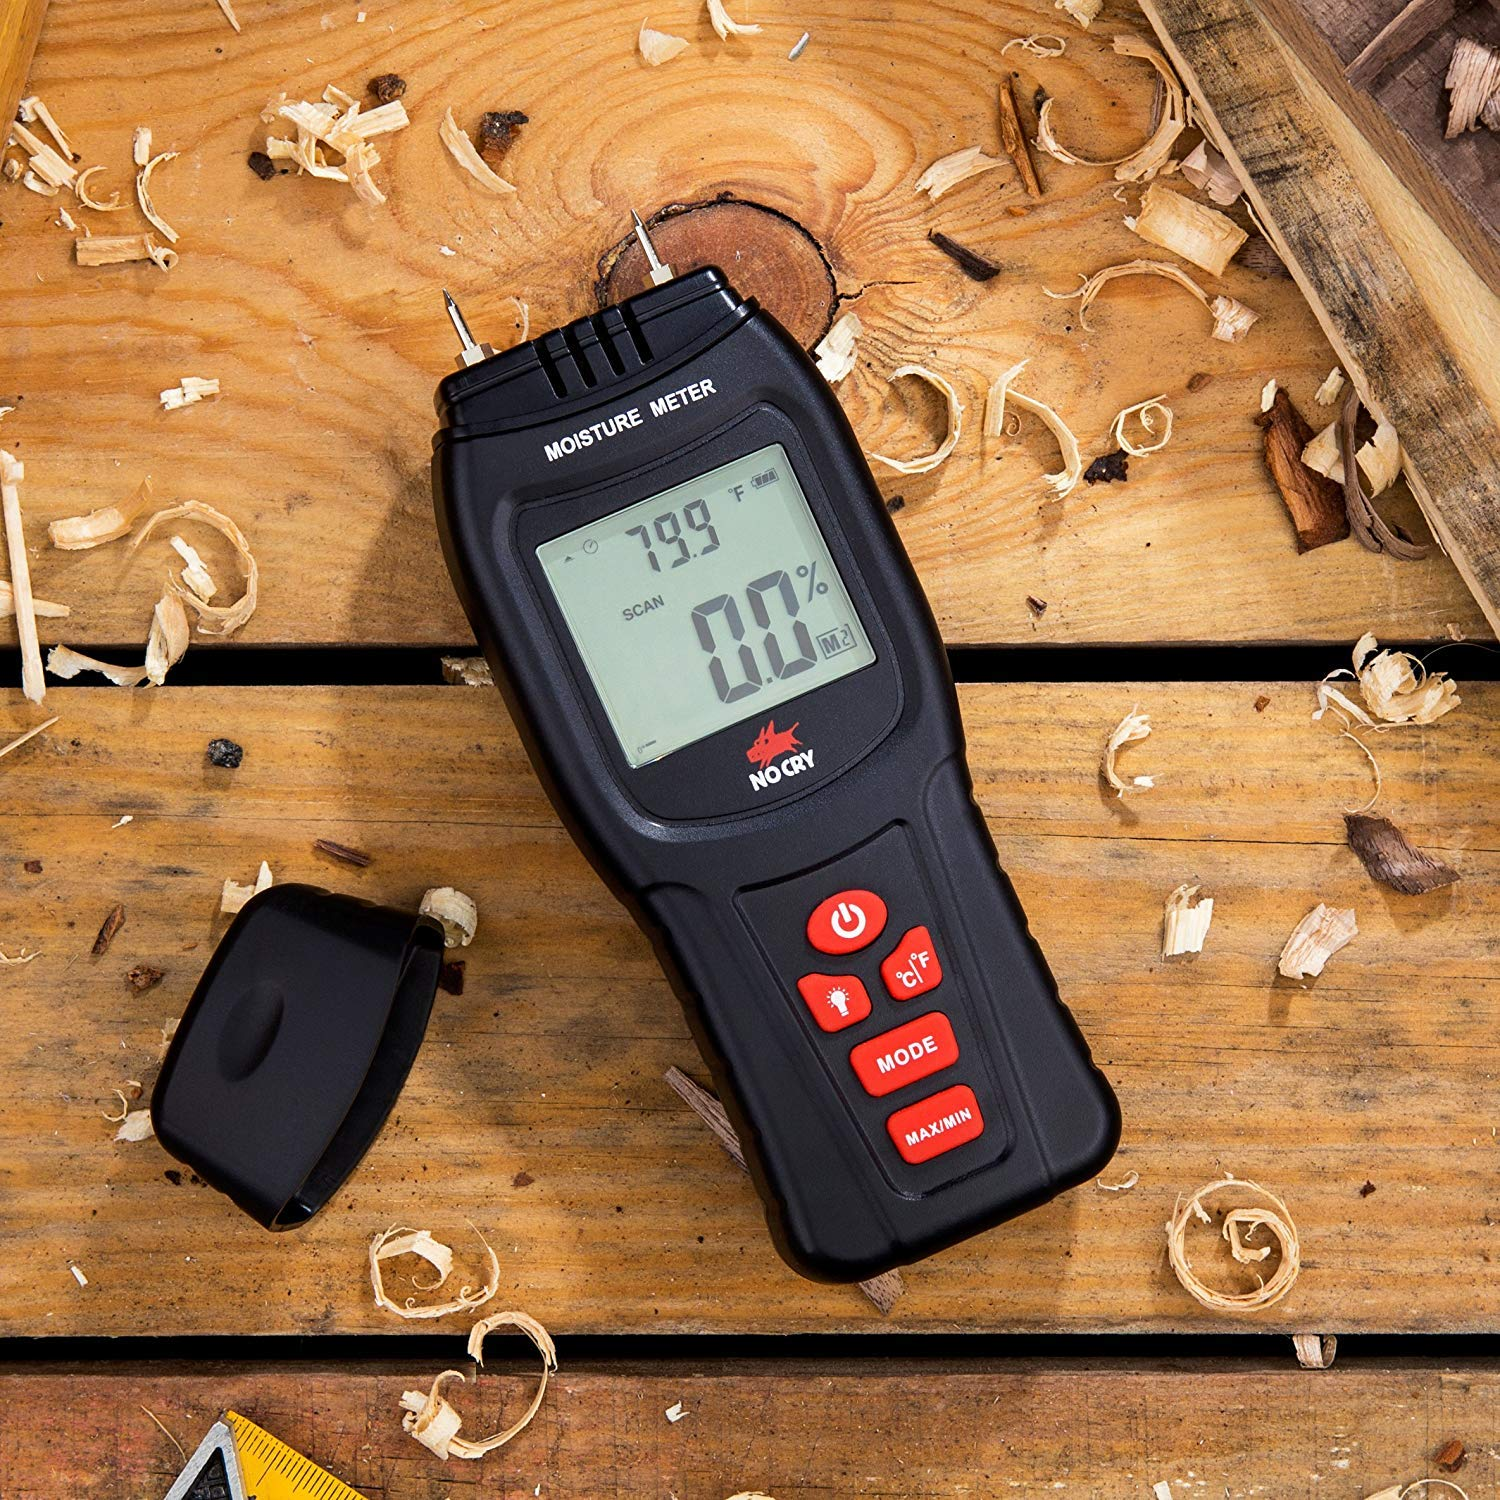 NoCry Digital Moisture Meter - Water Leak Detector and Thermometer for Wood & Building Materials, Battery and Replacement Electronic Probes Included by NoCry (Image #5)